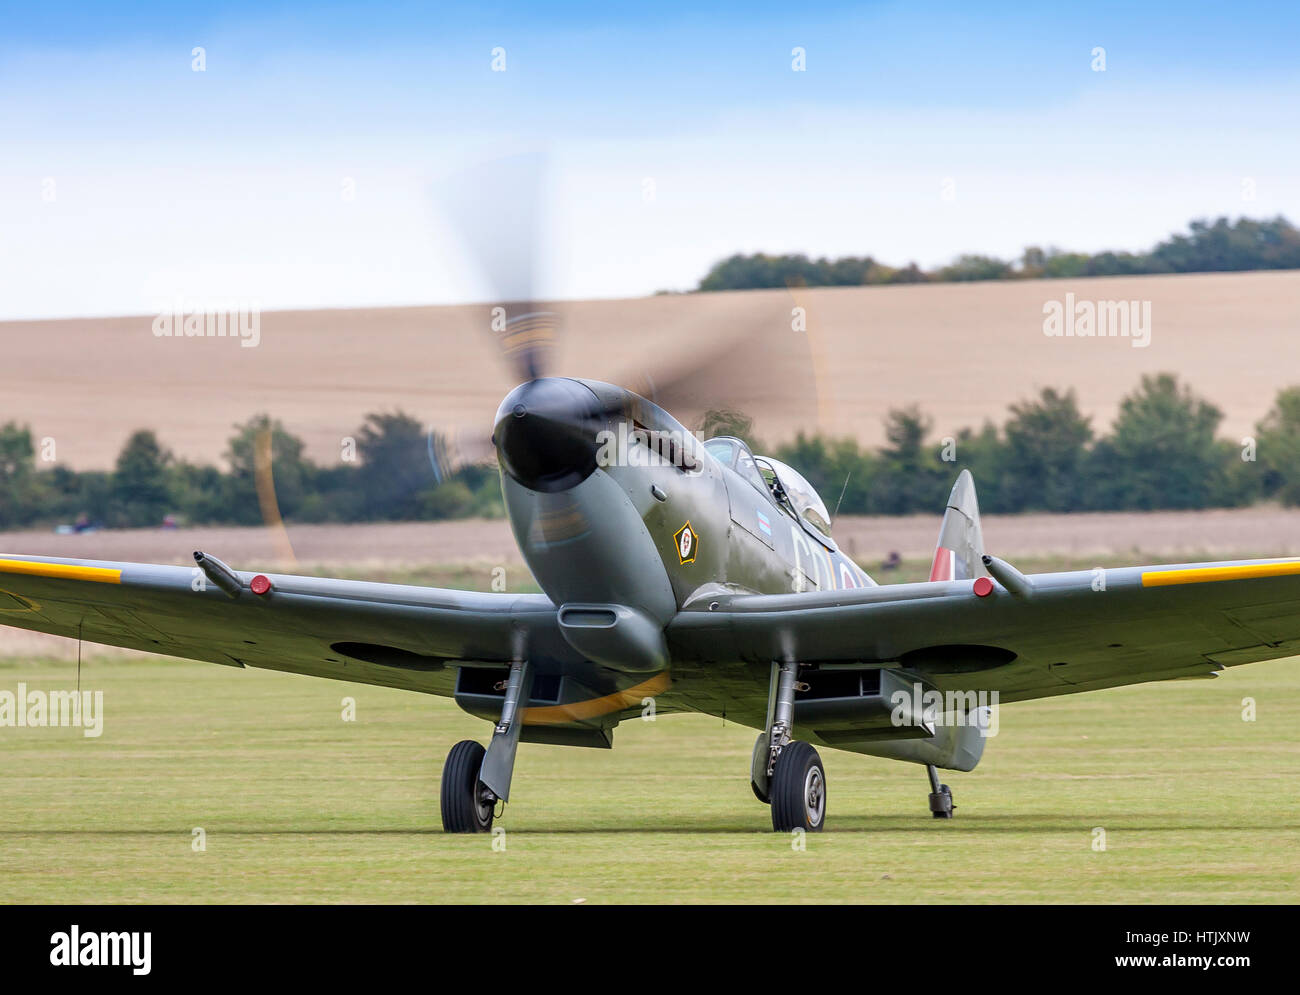 Supermarine Spitfire XVIe registration TD248 taxying on September 5th 2009 at Duxford, Cambridgeshire, UK - Stock Image